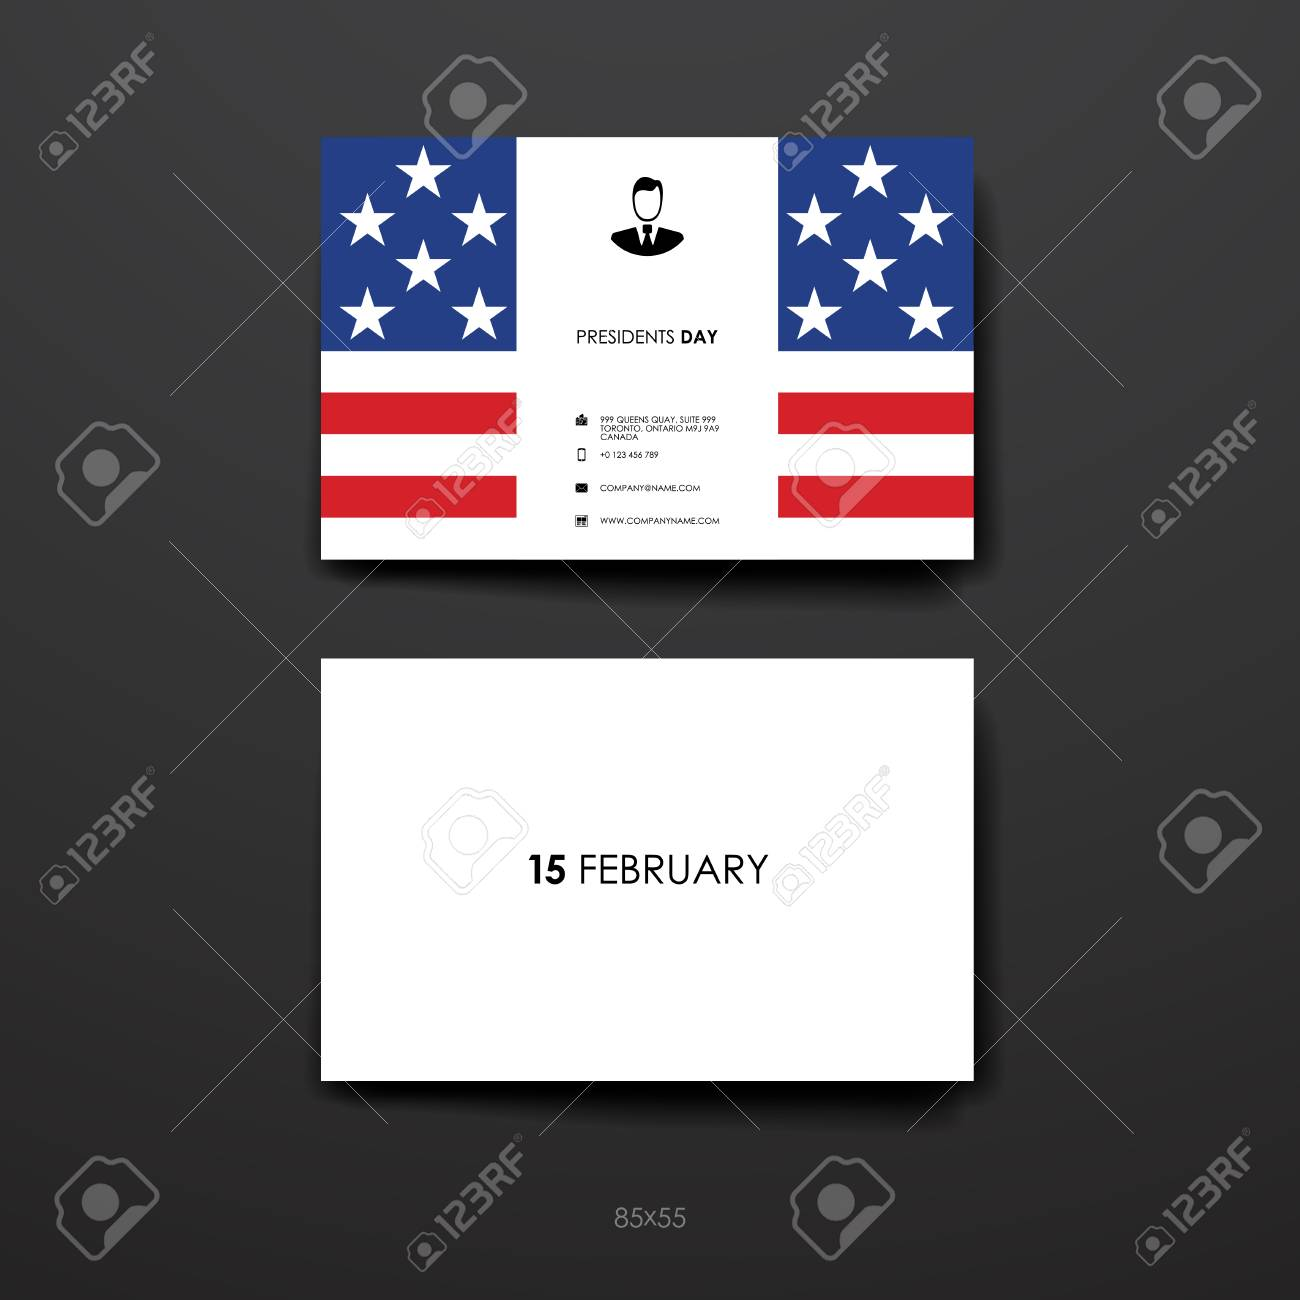 Set of business card template in presidents day style beautiful set of business card template in presidents day style beautiful design and layout stock vector flashek Choice Image